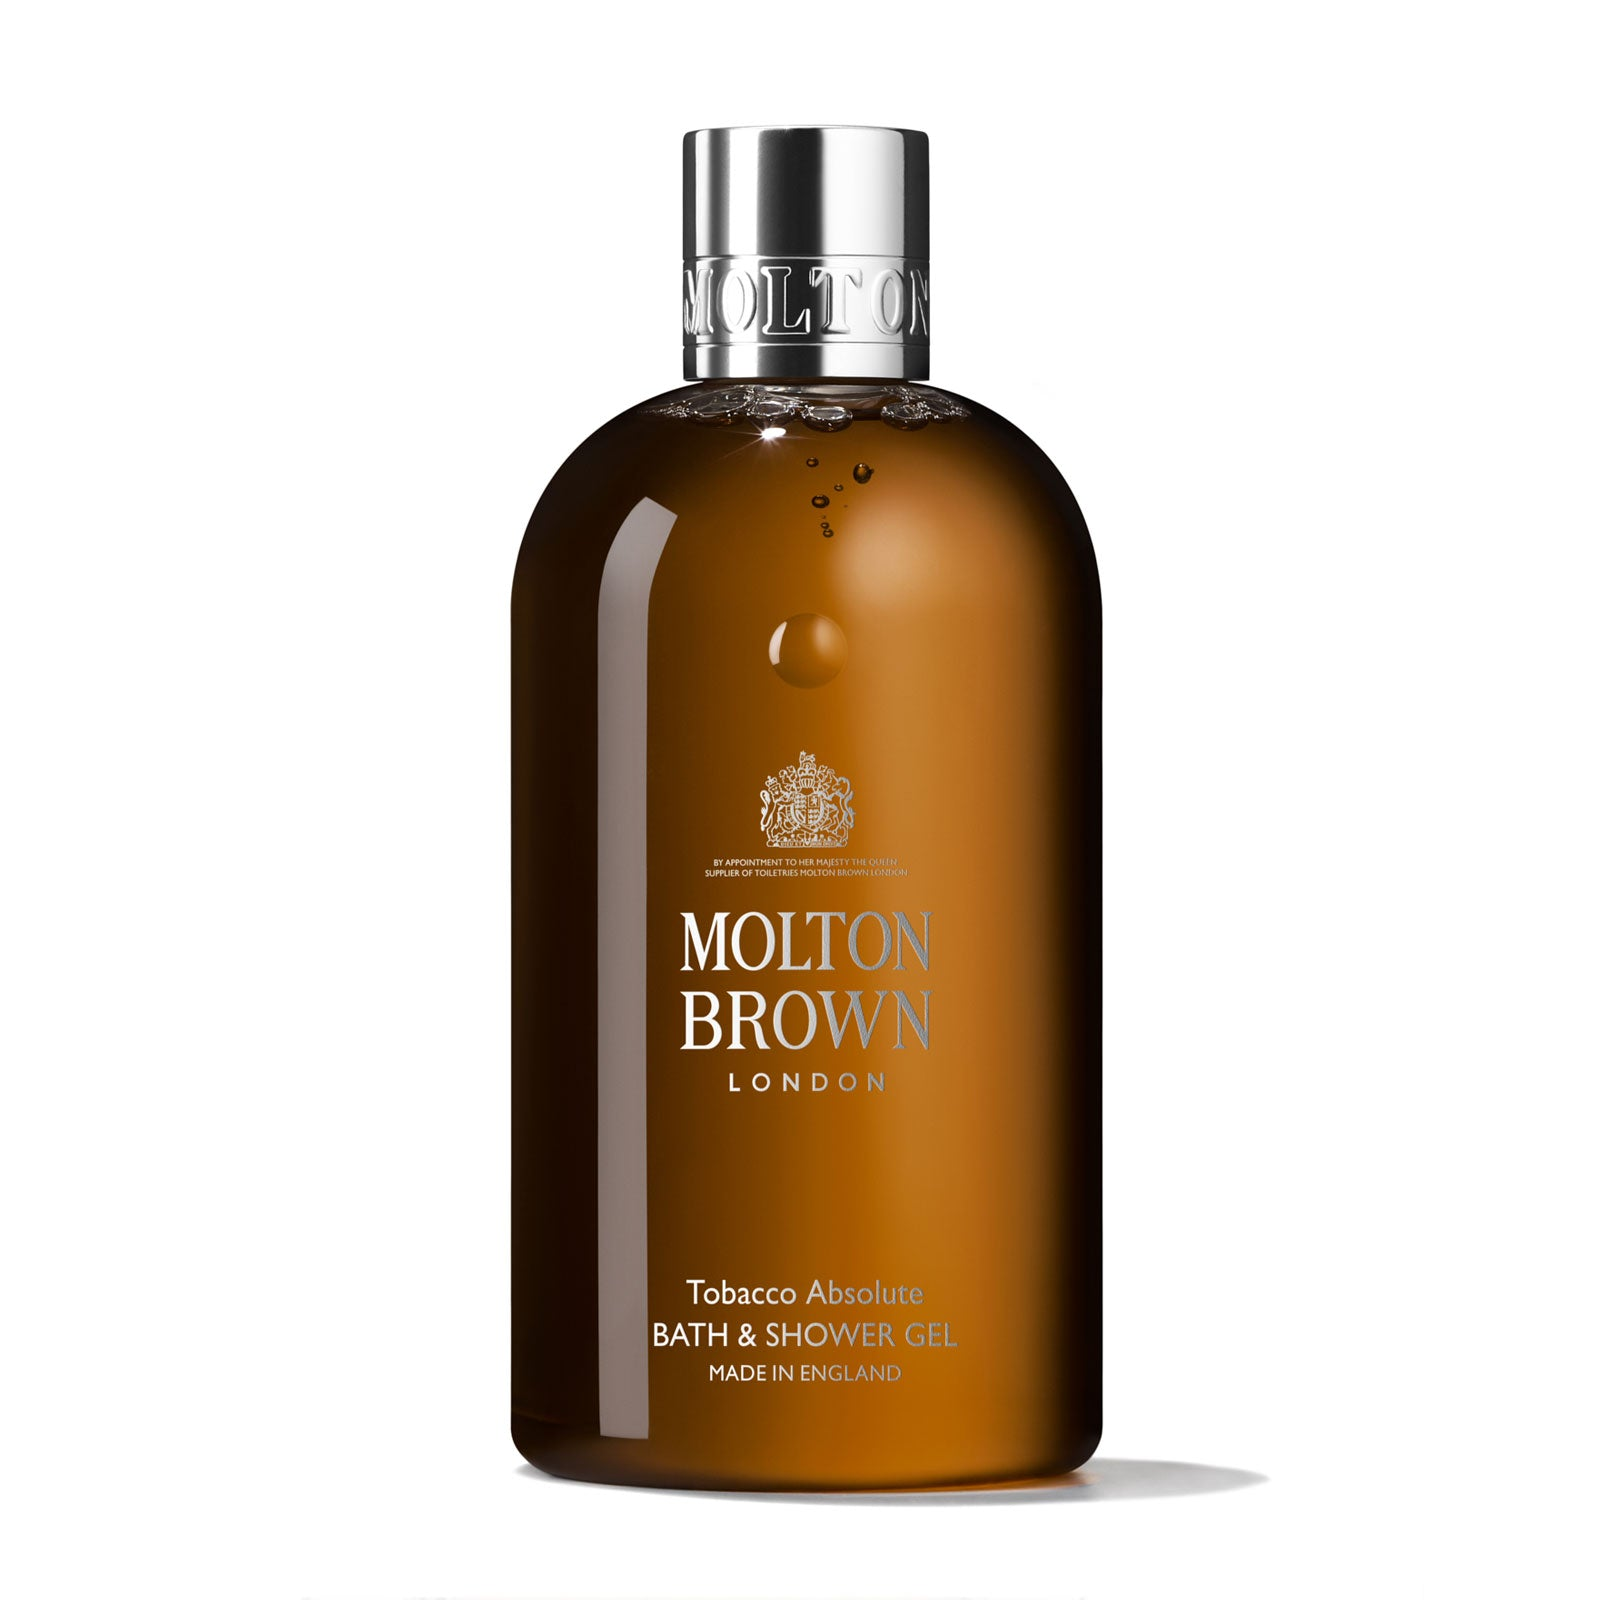 Molton Brown Tobacco Absolute Bath & Shower Gel 300ml